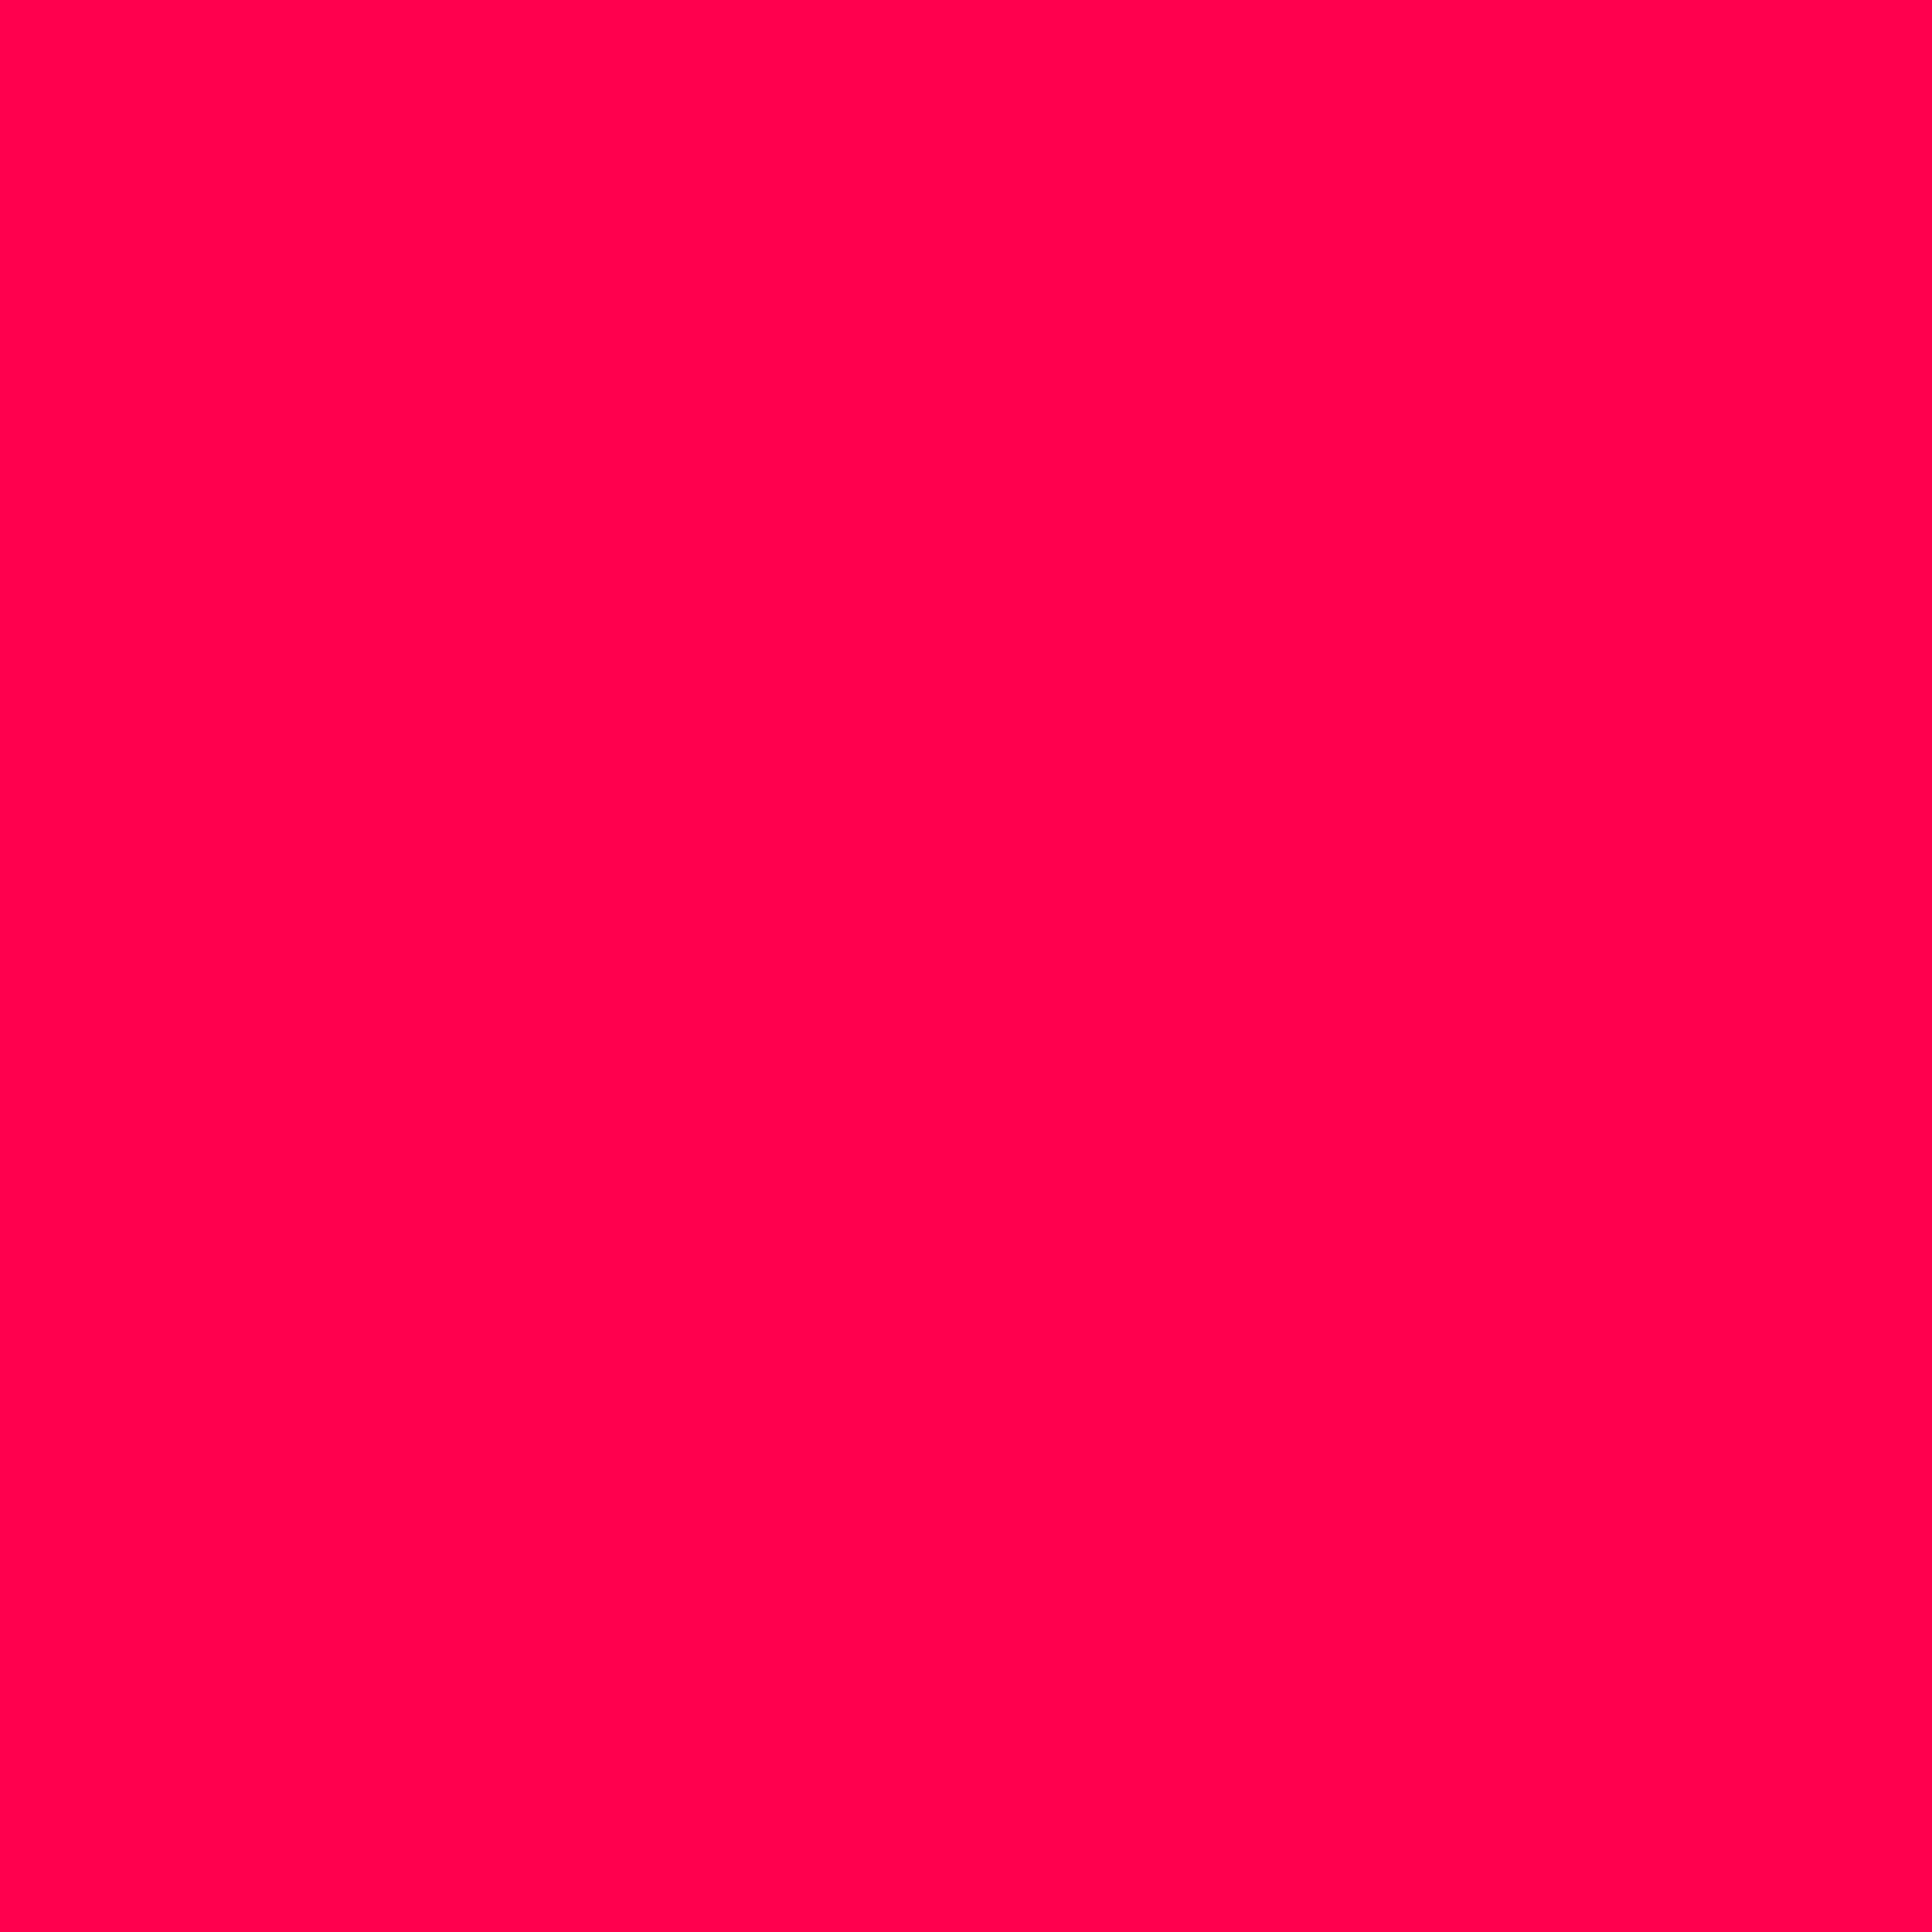 3600x3600 Folly Solid Color Background